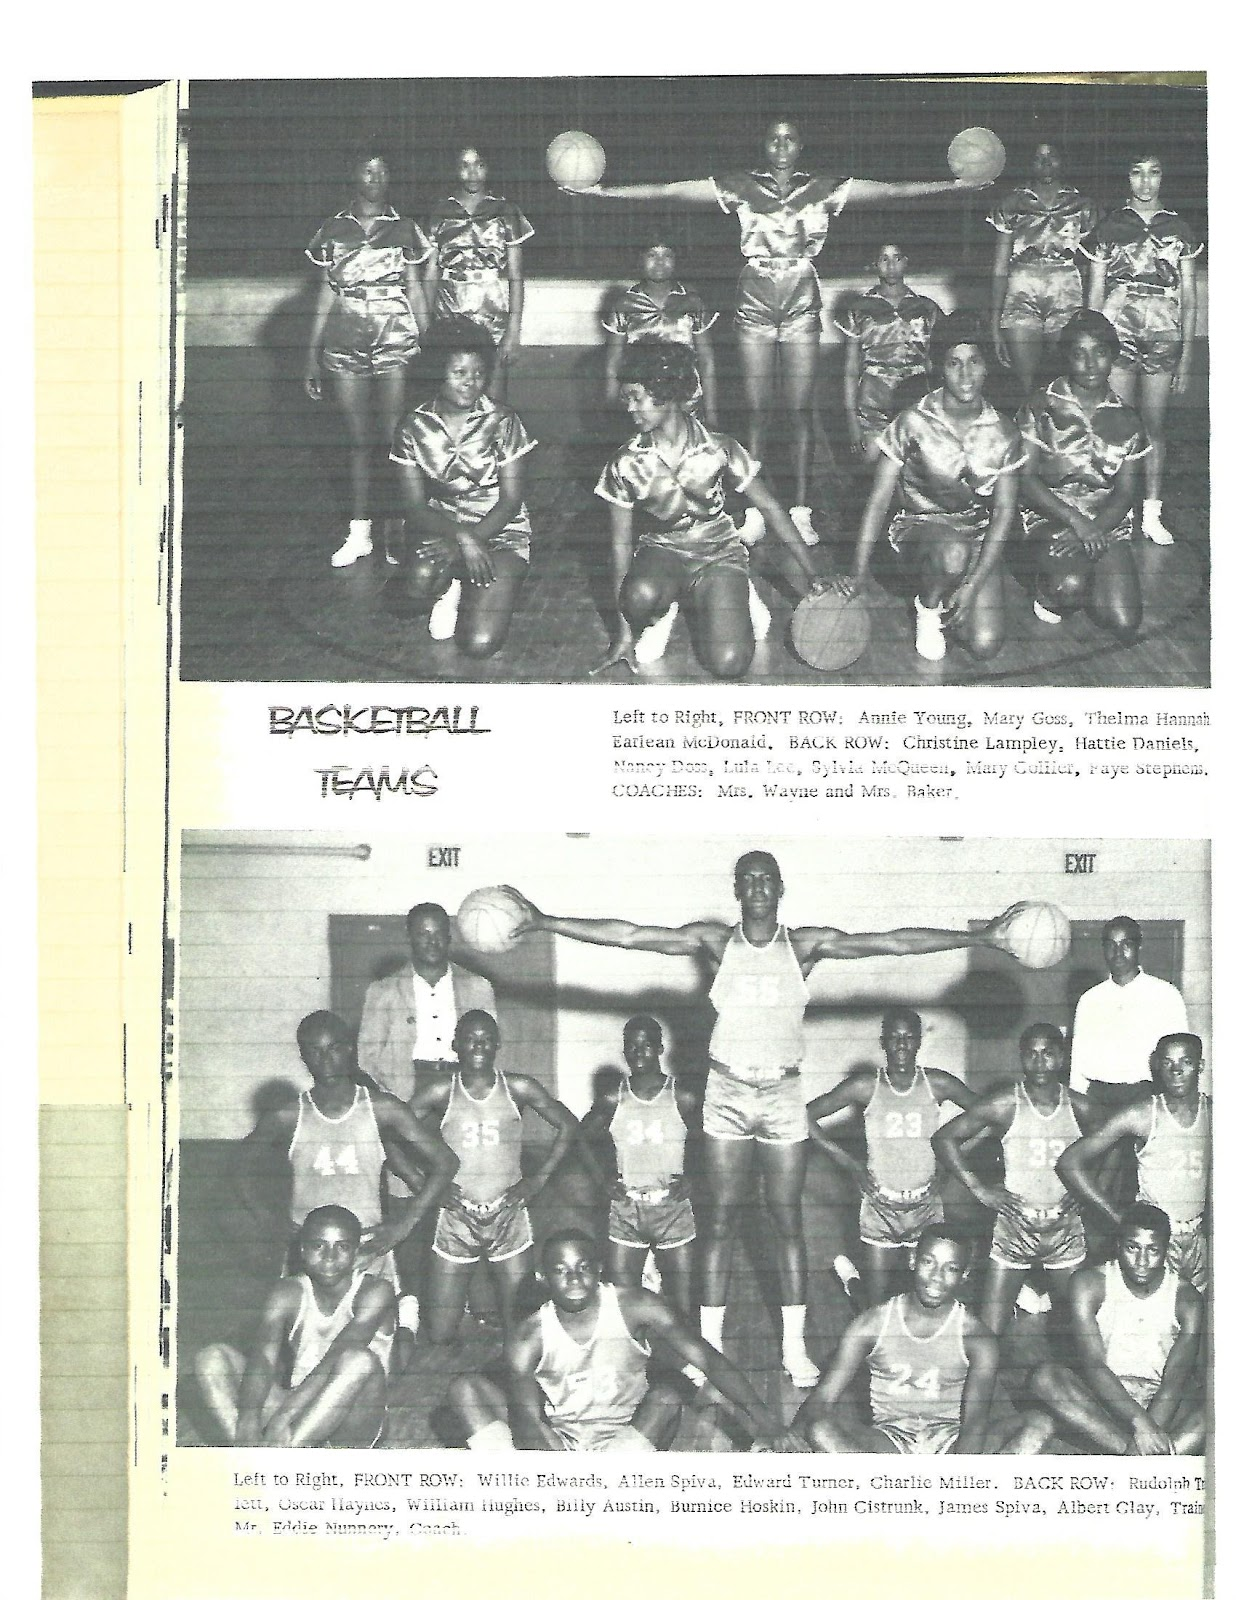 C:\Users\elmetra patterson\Documents\Trojan Basketball boys 1963.jpg